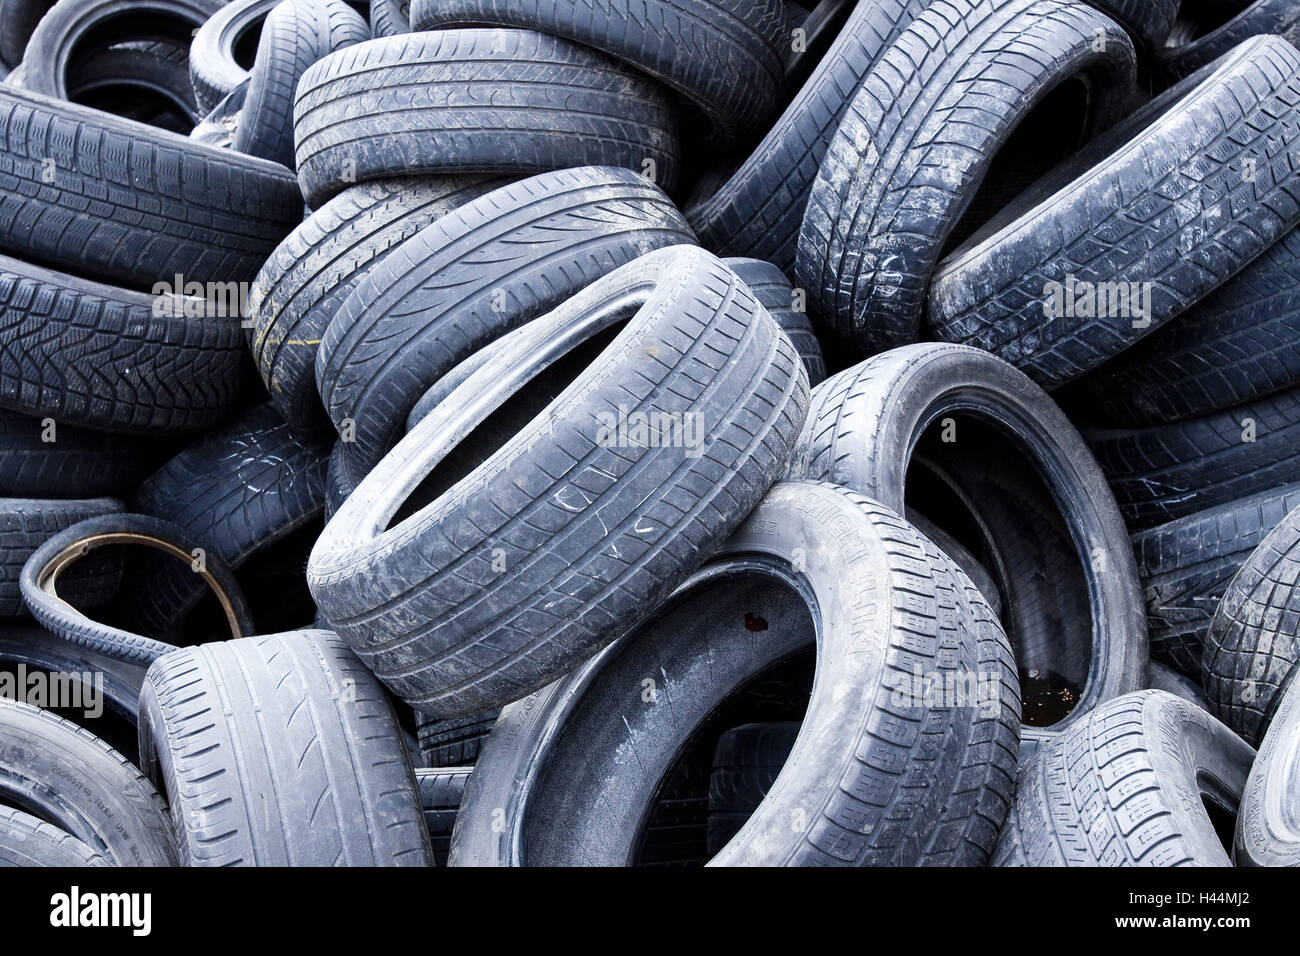 Automobile tyres, old, disposal, waste, garbage, tyre, batch, rubber